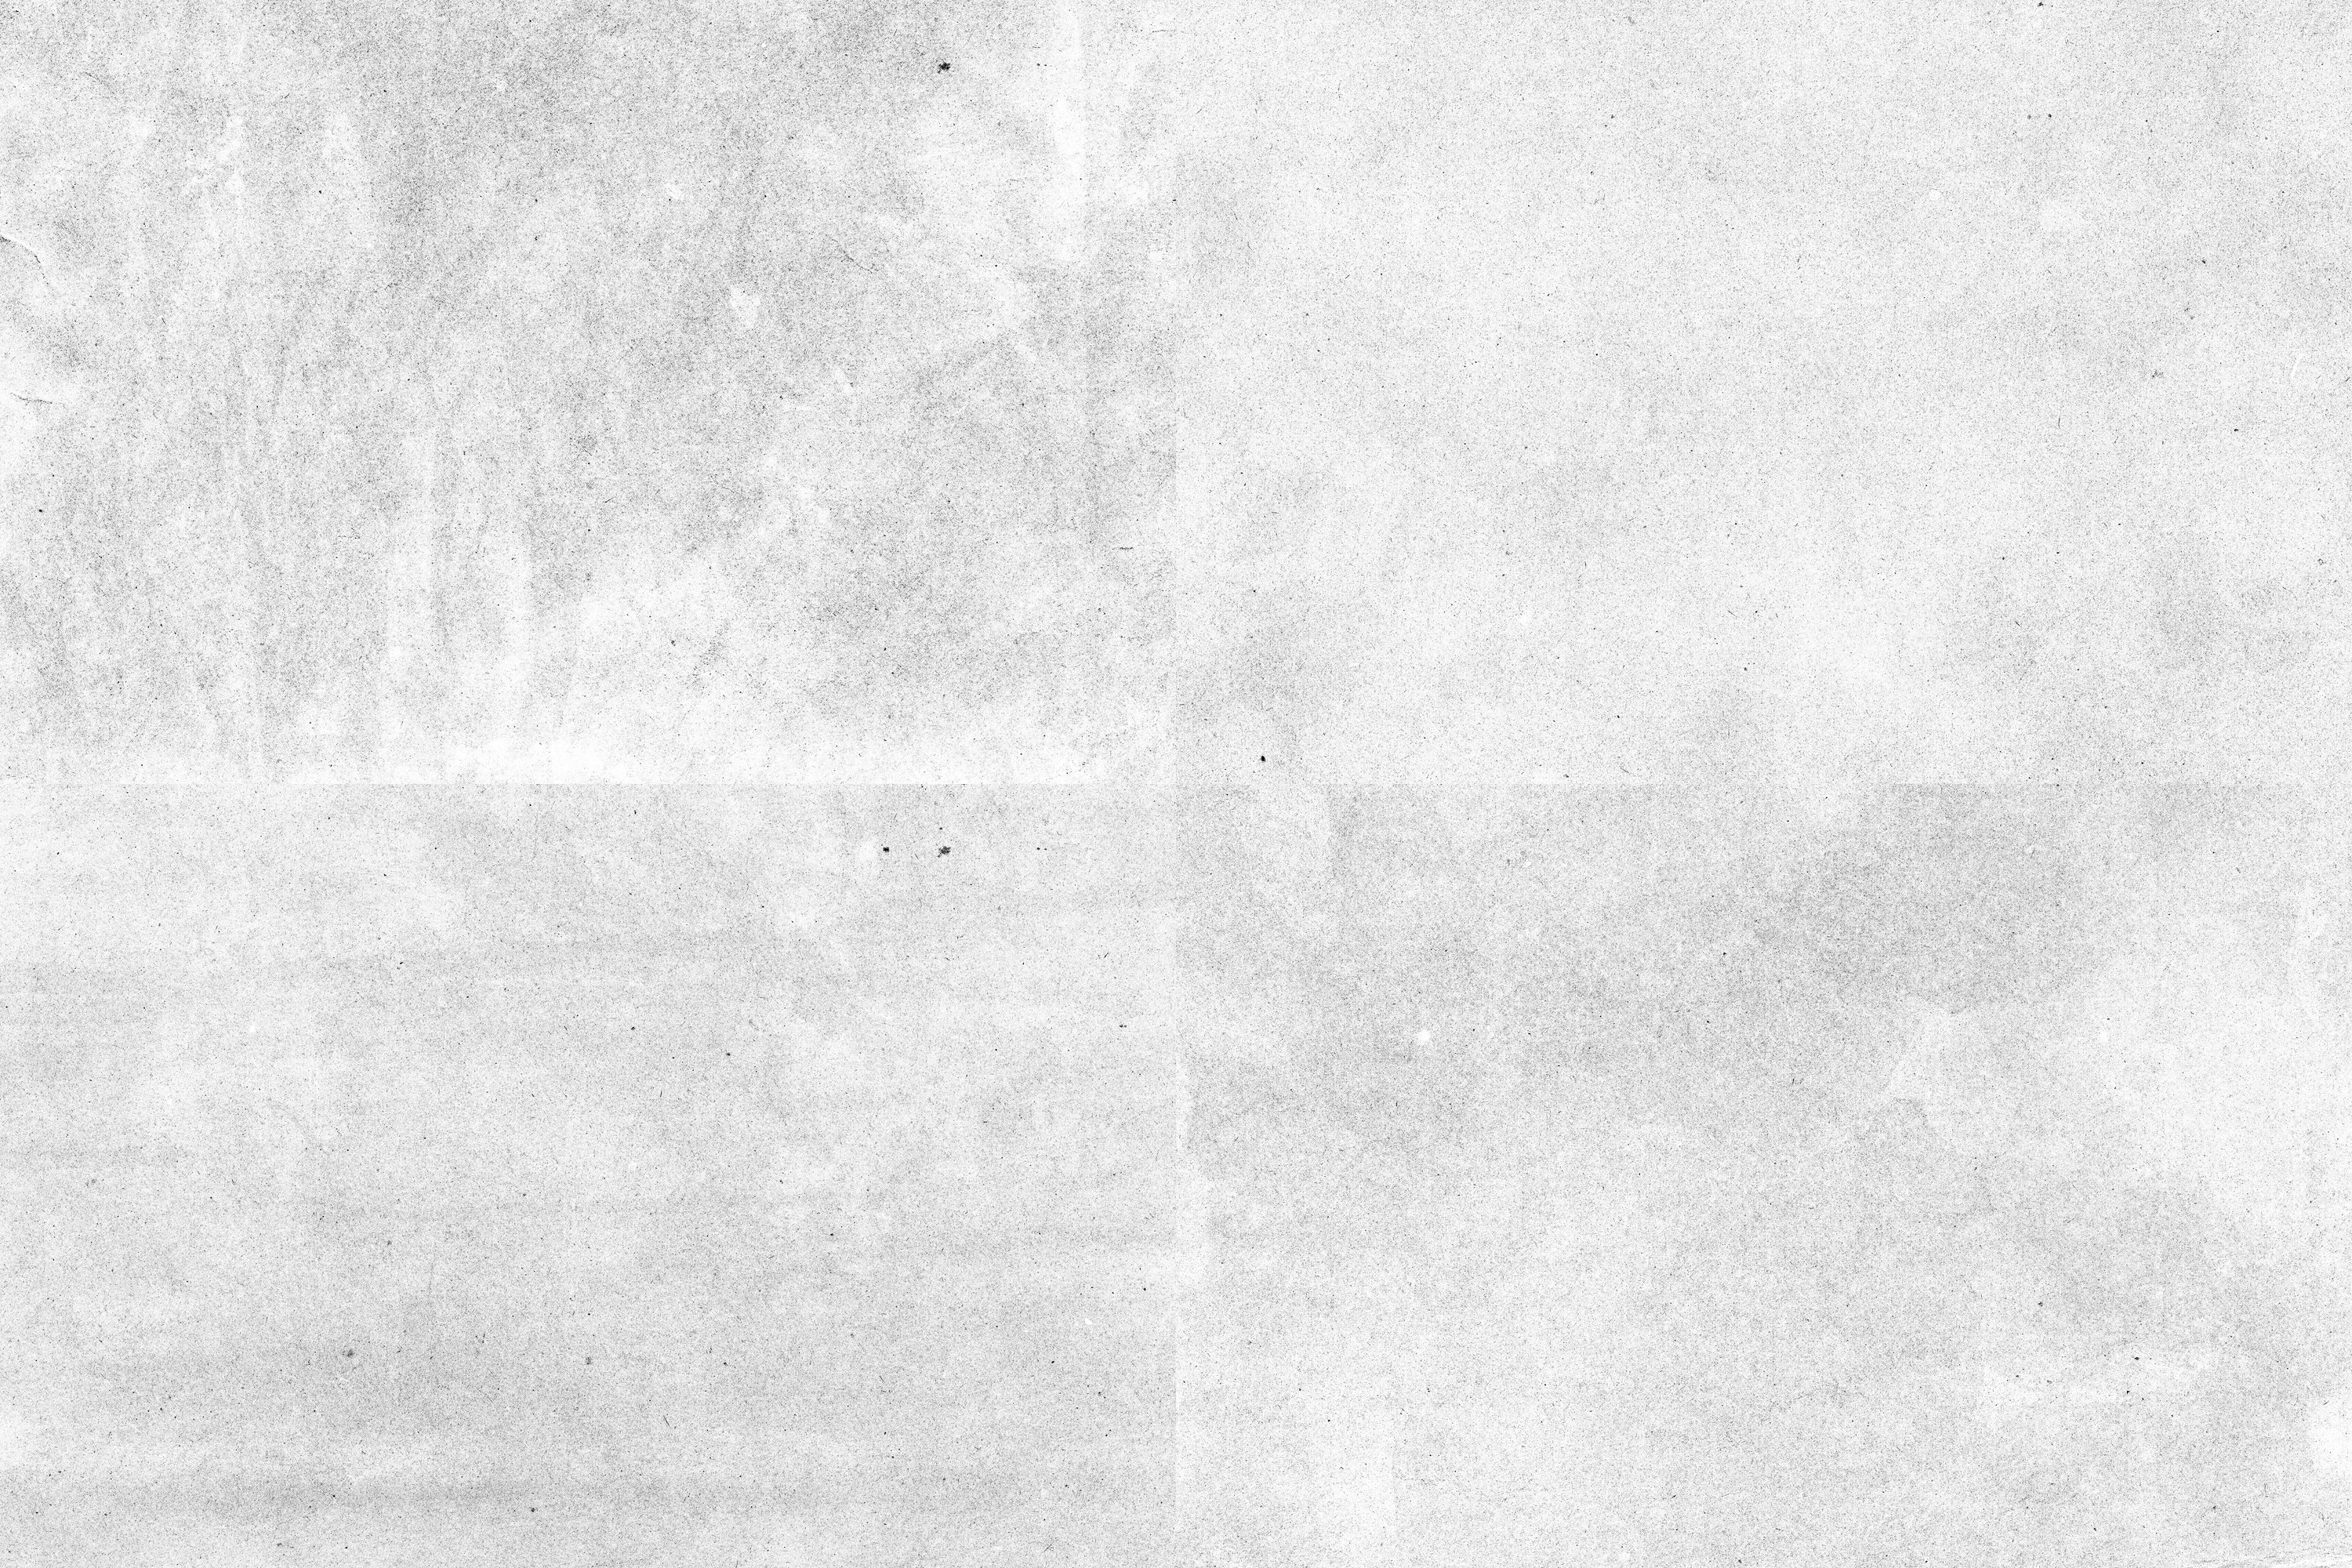 Subtle Grunge Textures Pack example image 3